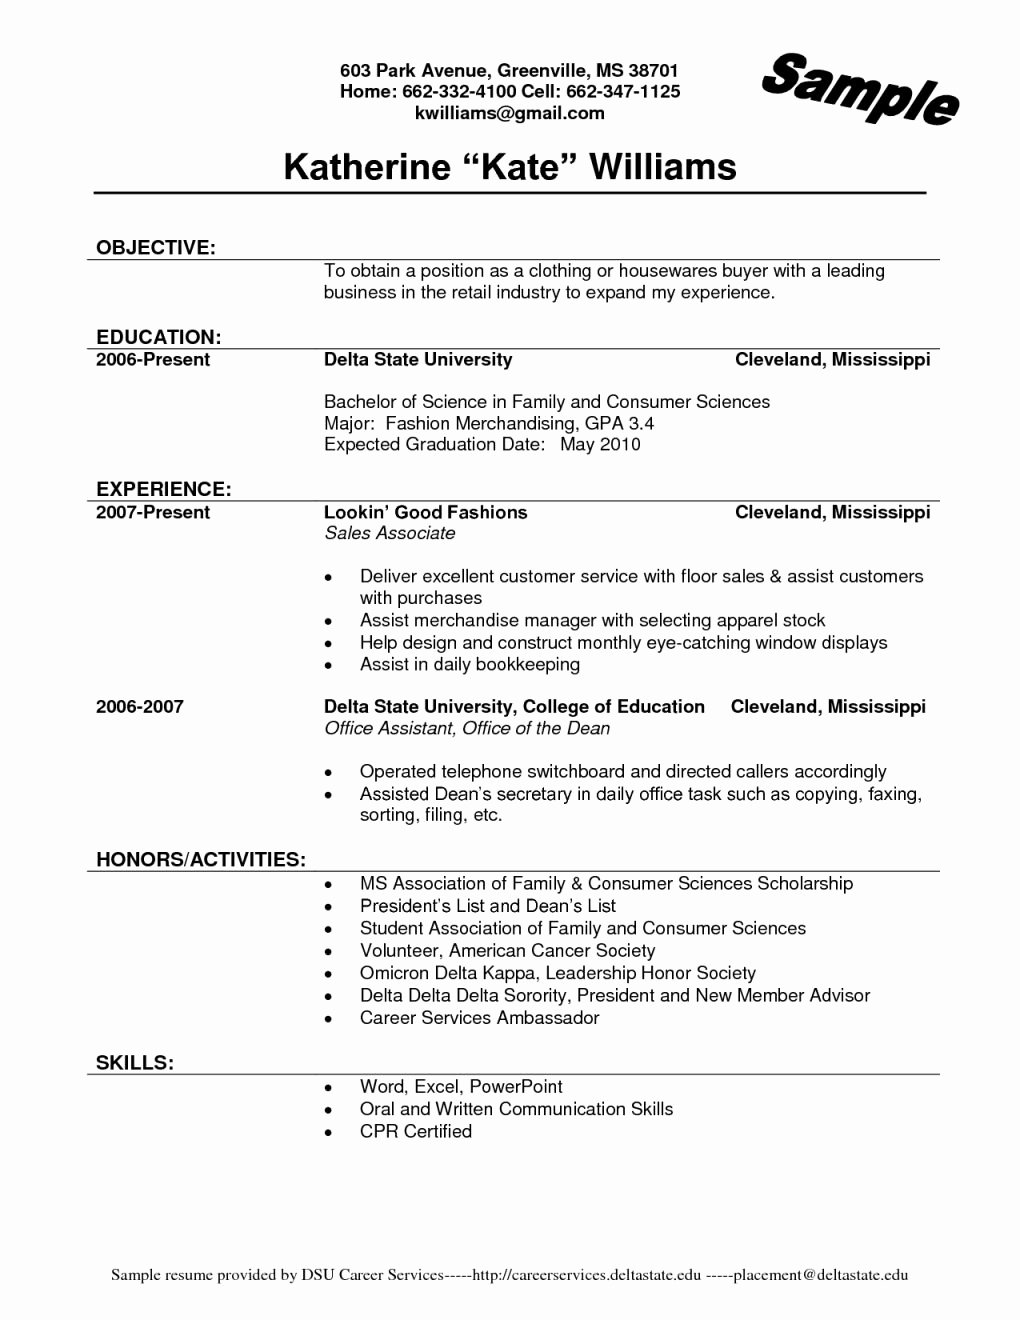 Retail Skills Resume Sales associate Objective Desktop